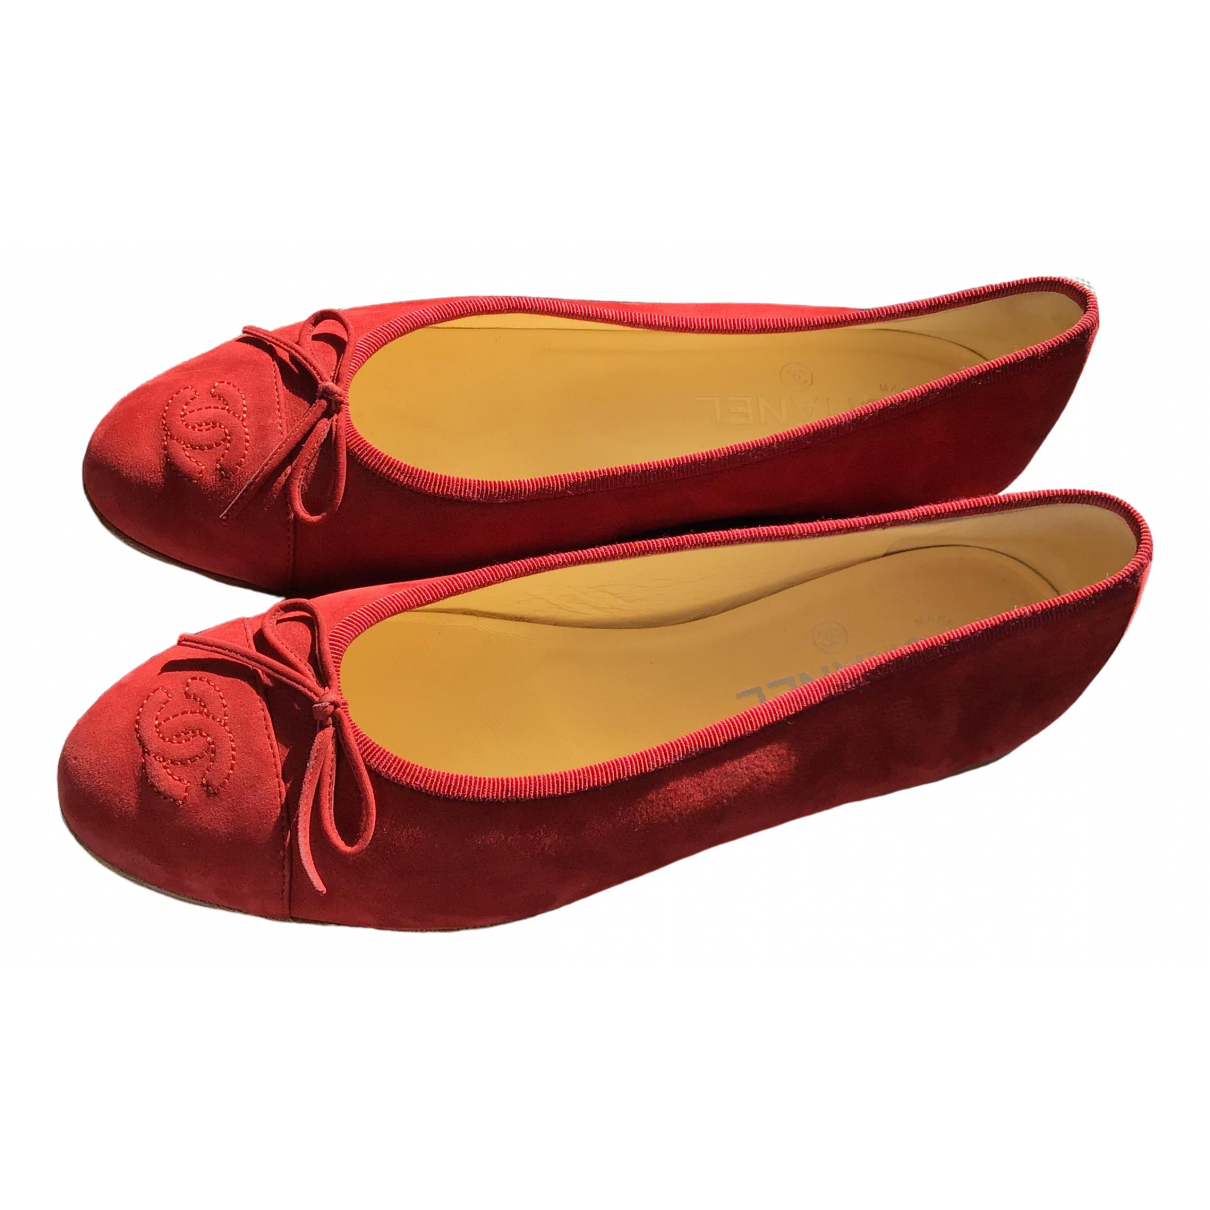 Chanel \N Red Suede Ballet flats for Women 39 EU